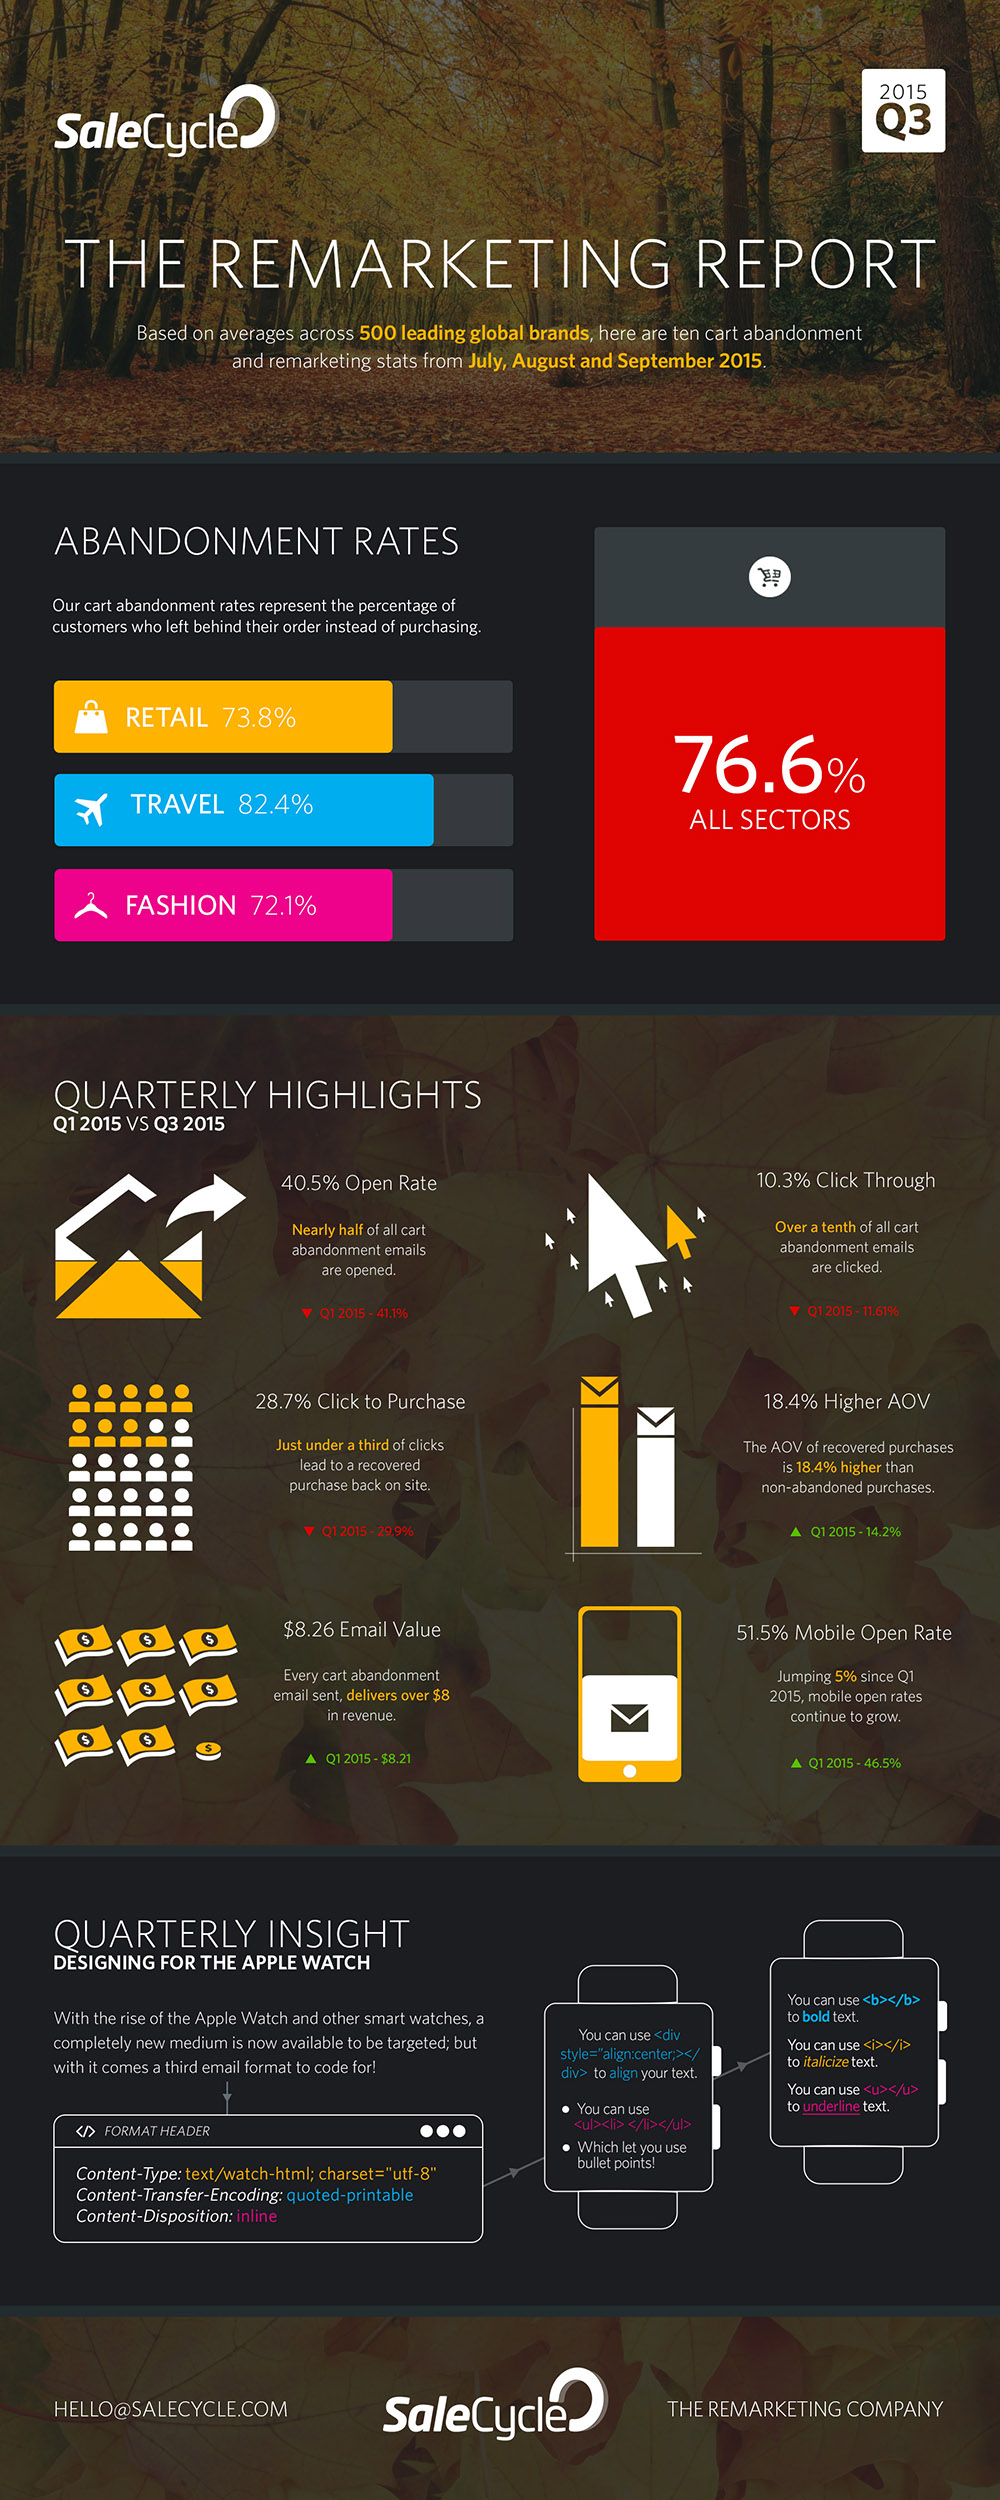 The Remarketing Report - Q3 2015